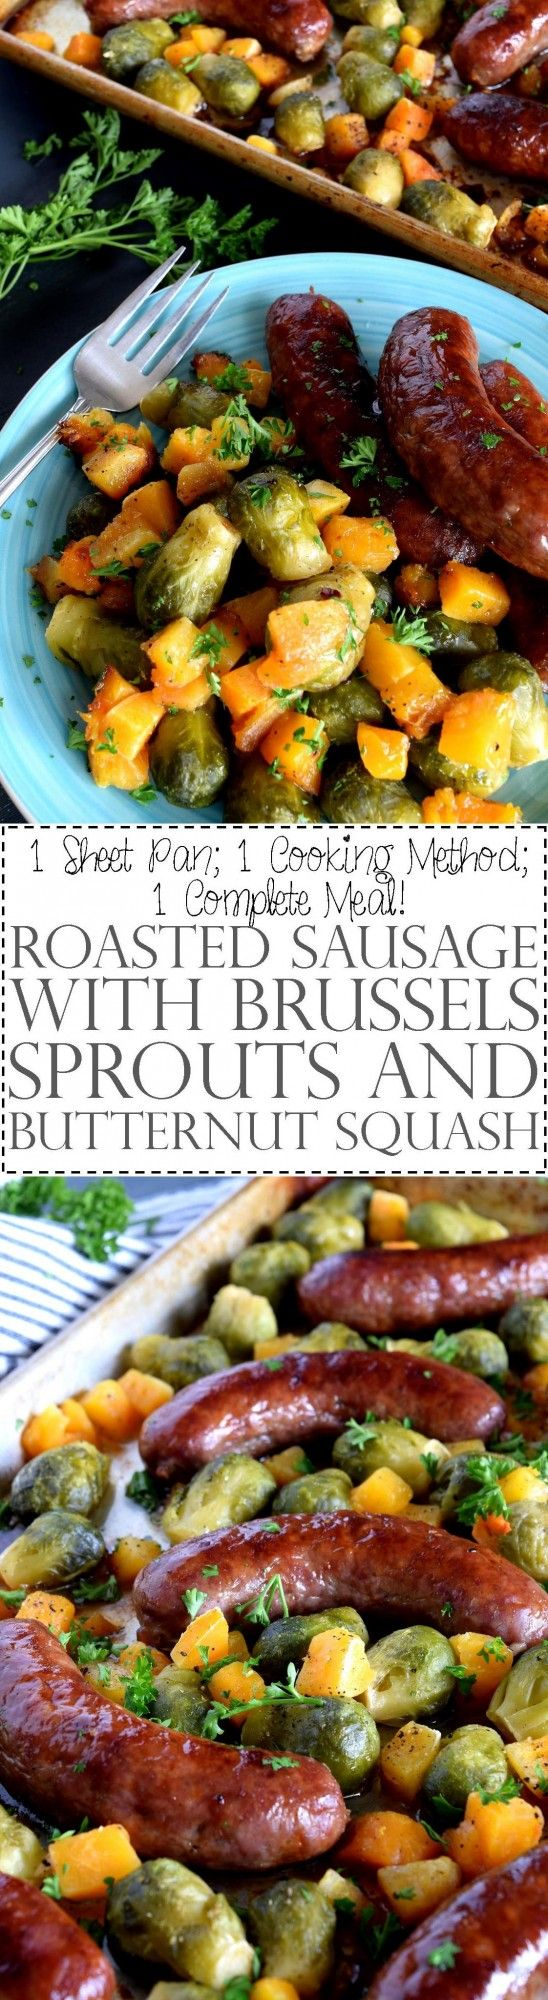 Roasted Sausage with Brussels Sprouts and Butternut Squash - One pan dinners are all the rage, especially one that combines great tasting pork sausage and veggies, like these Brussels sprouts and butternut squash. Doesn't this look delicious? All you need is 45 minutes and a few pantry staples.